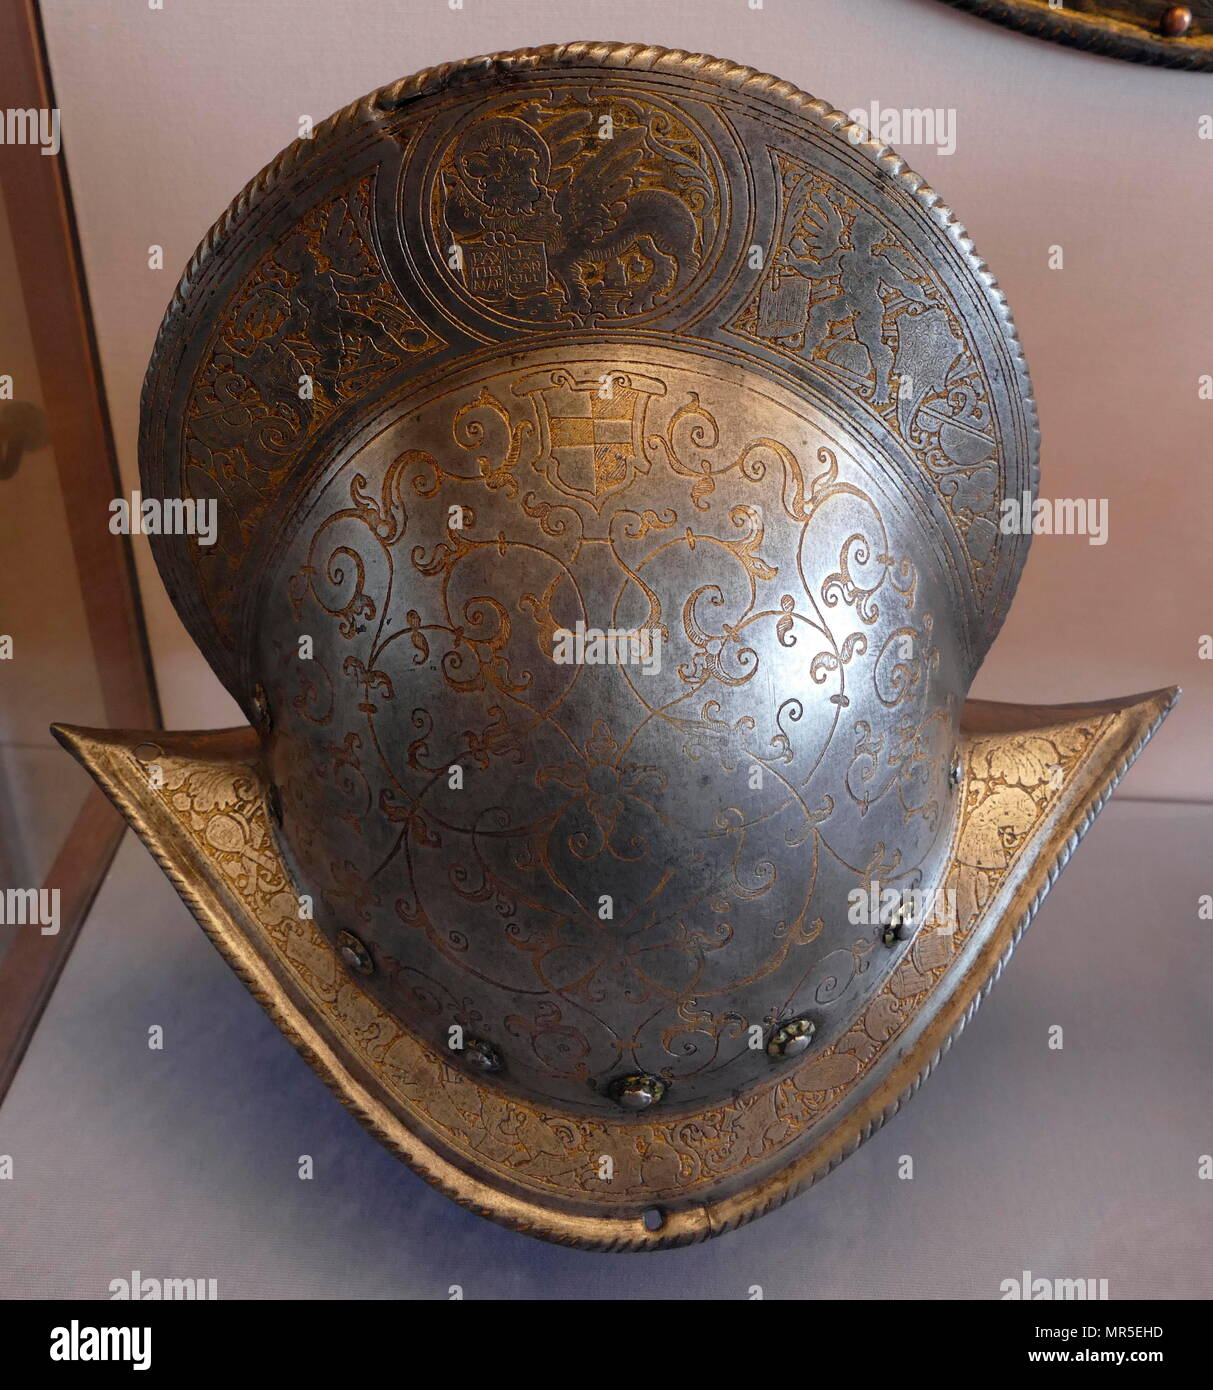 Venetian 16th century helmet worn by a soldier of the Doge's army - Stock Image